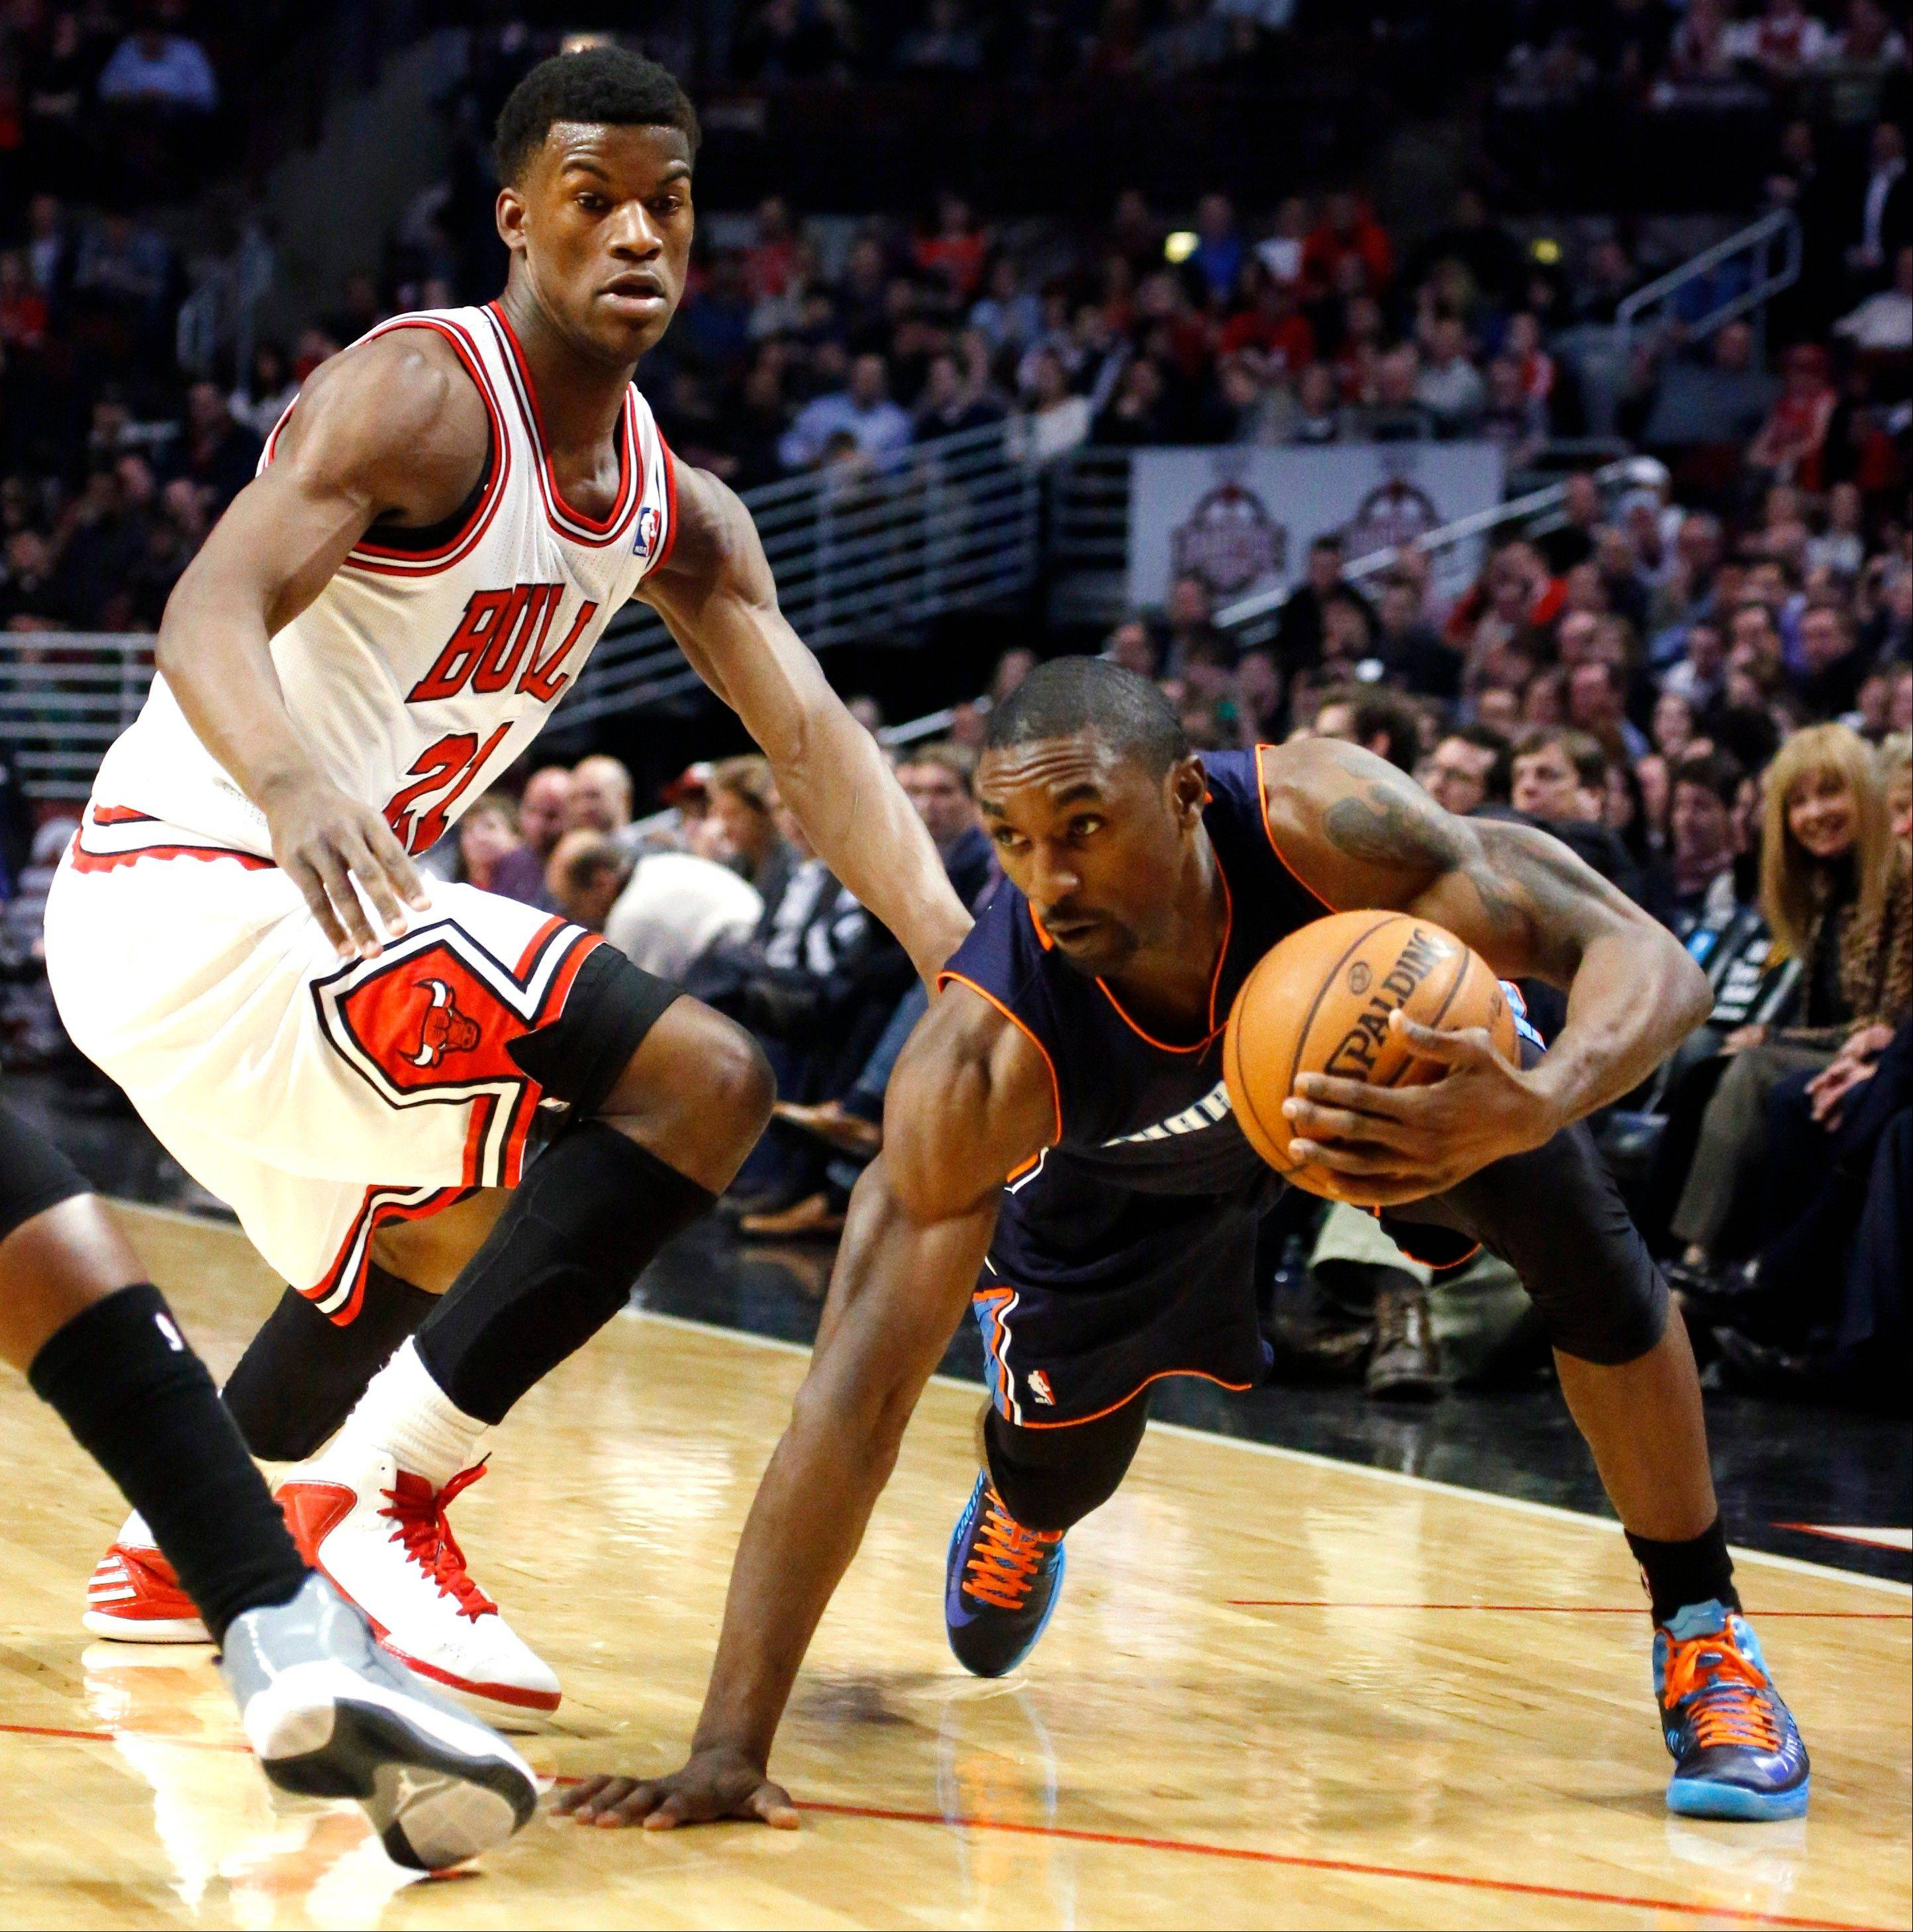 Charlotte Bobcats guard Ben Gordon, right, maintains his balance as Bulls forward Jimmy Butler defends during Monday's first half at United Center.